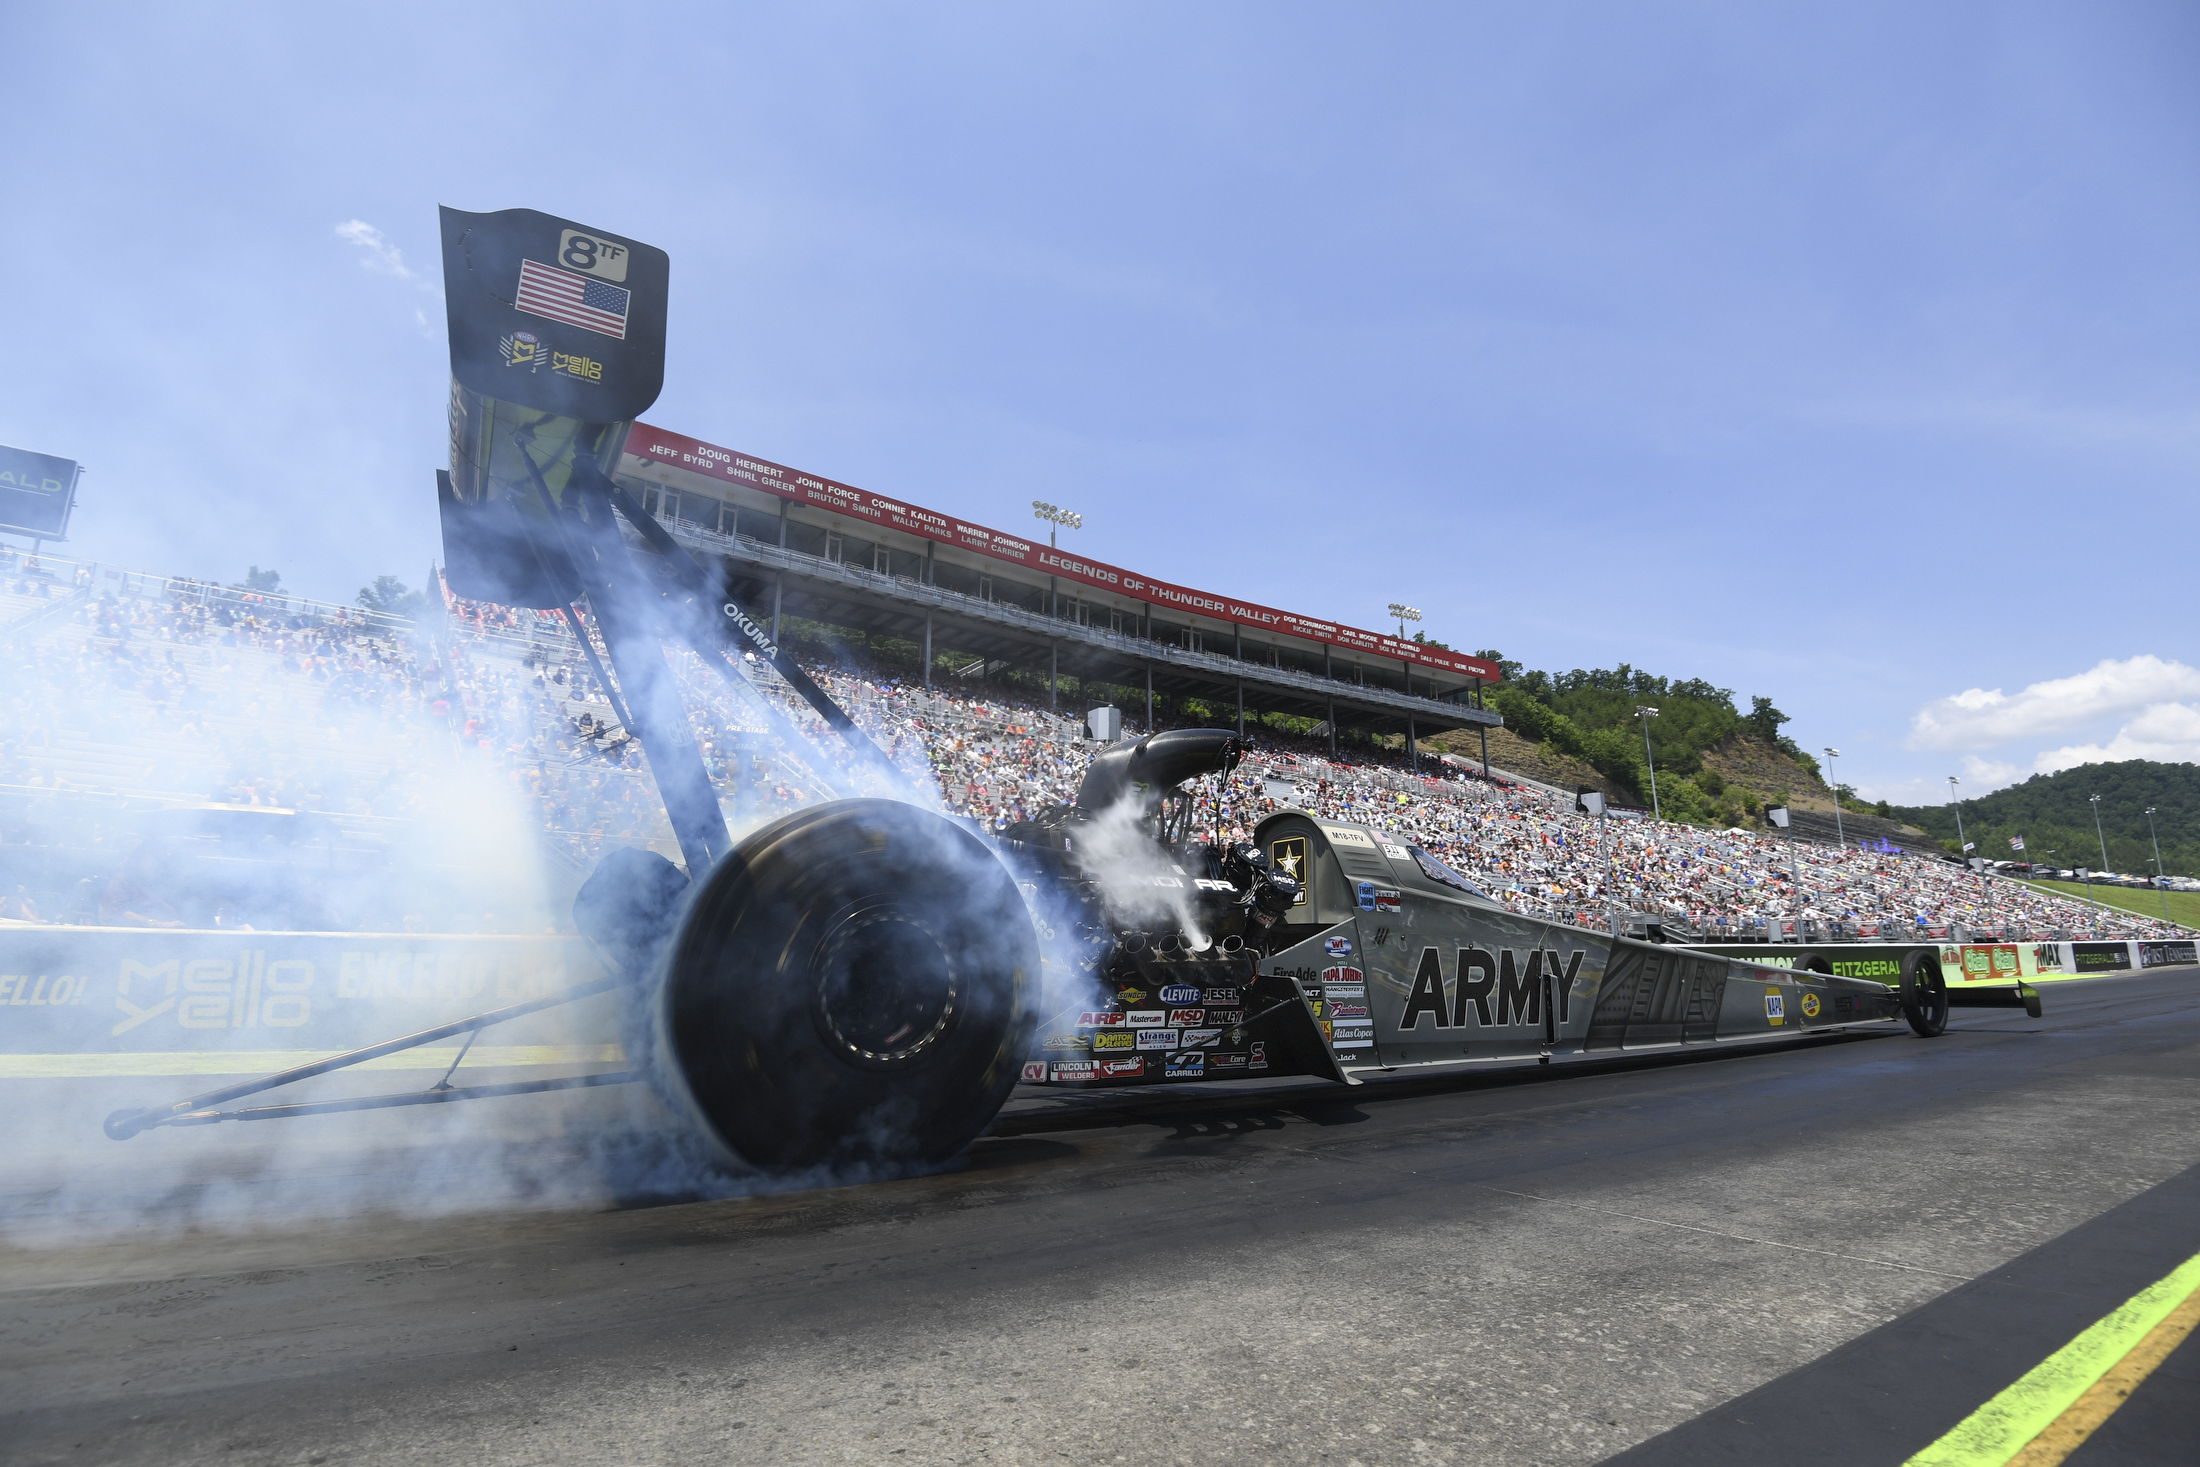 Top Fuel Dragster pilot Tony Schumacher racing on Sunday at the Fitzgerald USA NHRA Thunder Valley Nationals